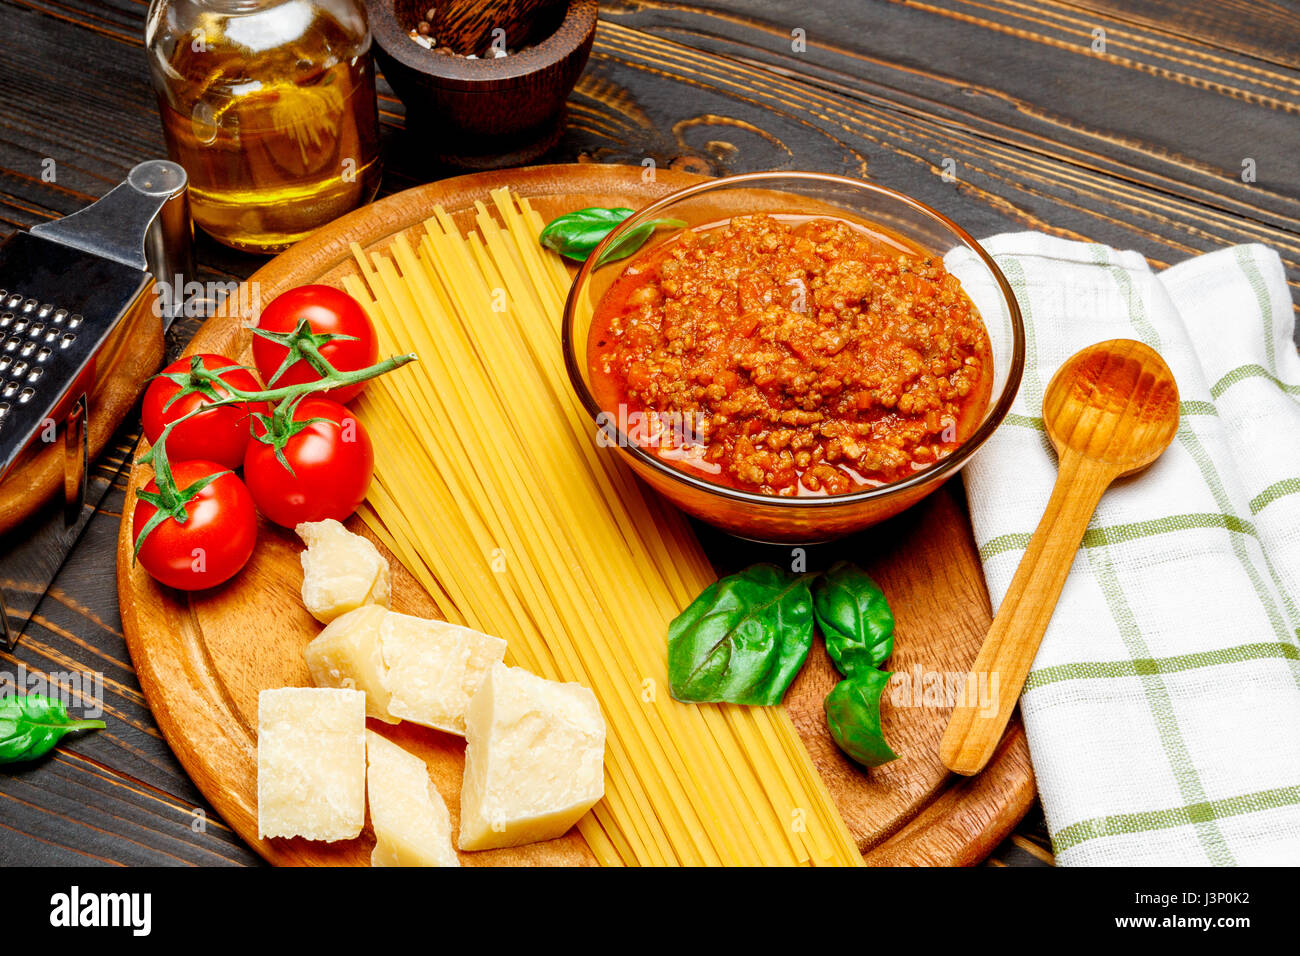 Spaghetti bolognese sauce and ingridients - Stock Image